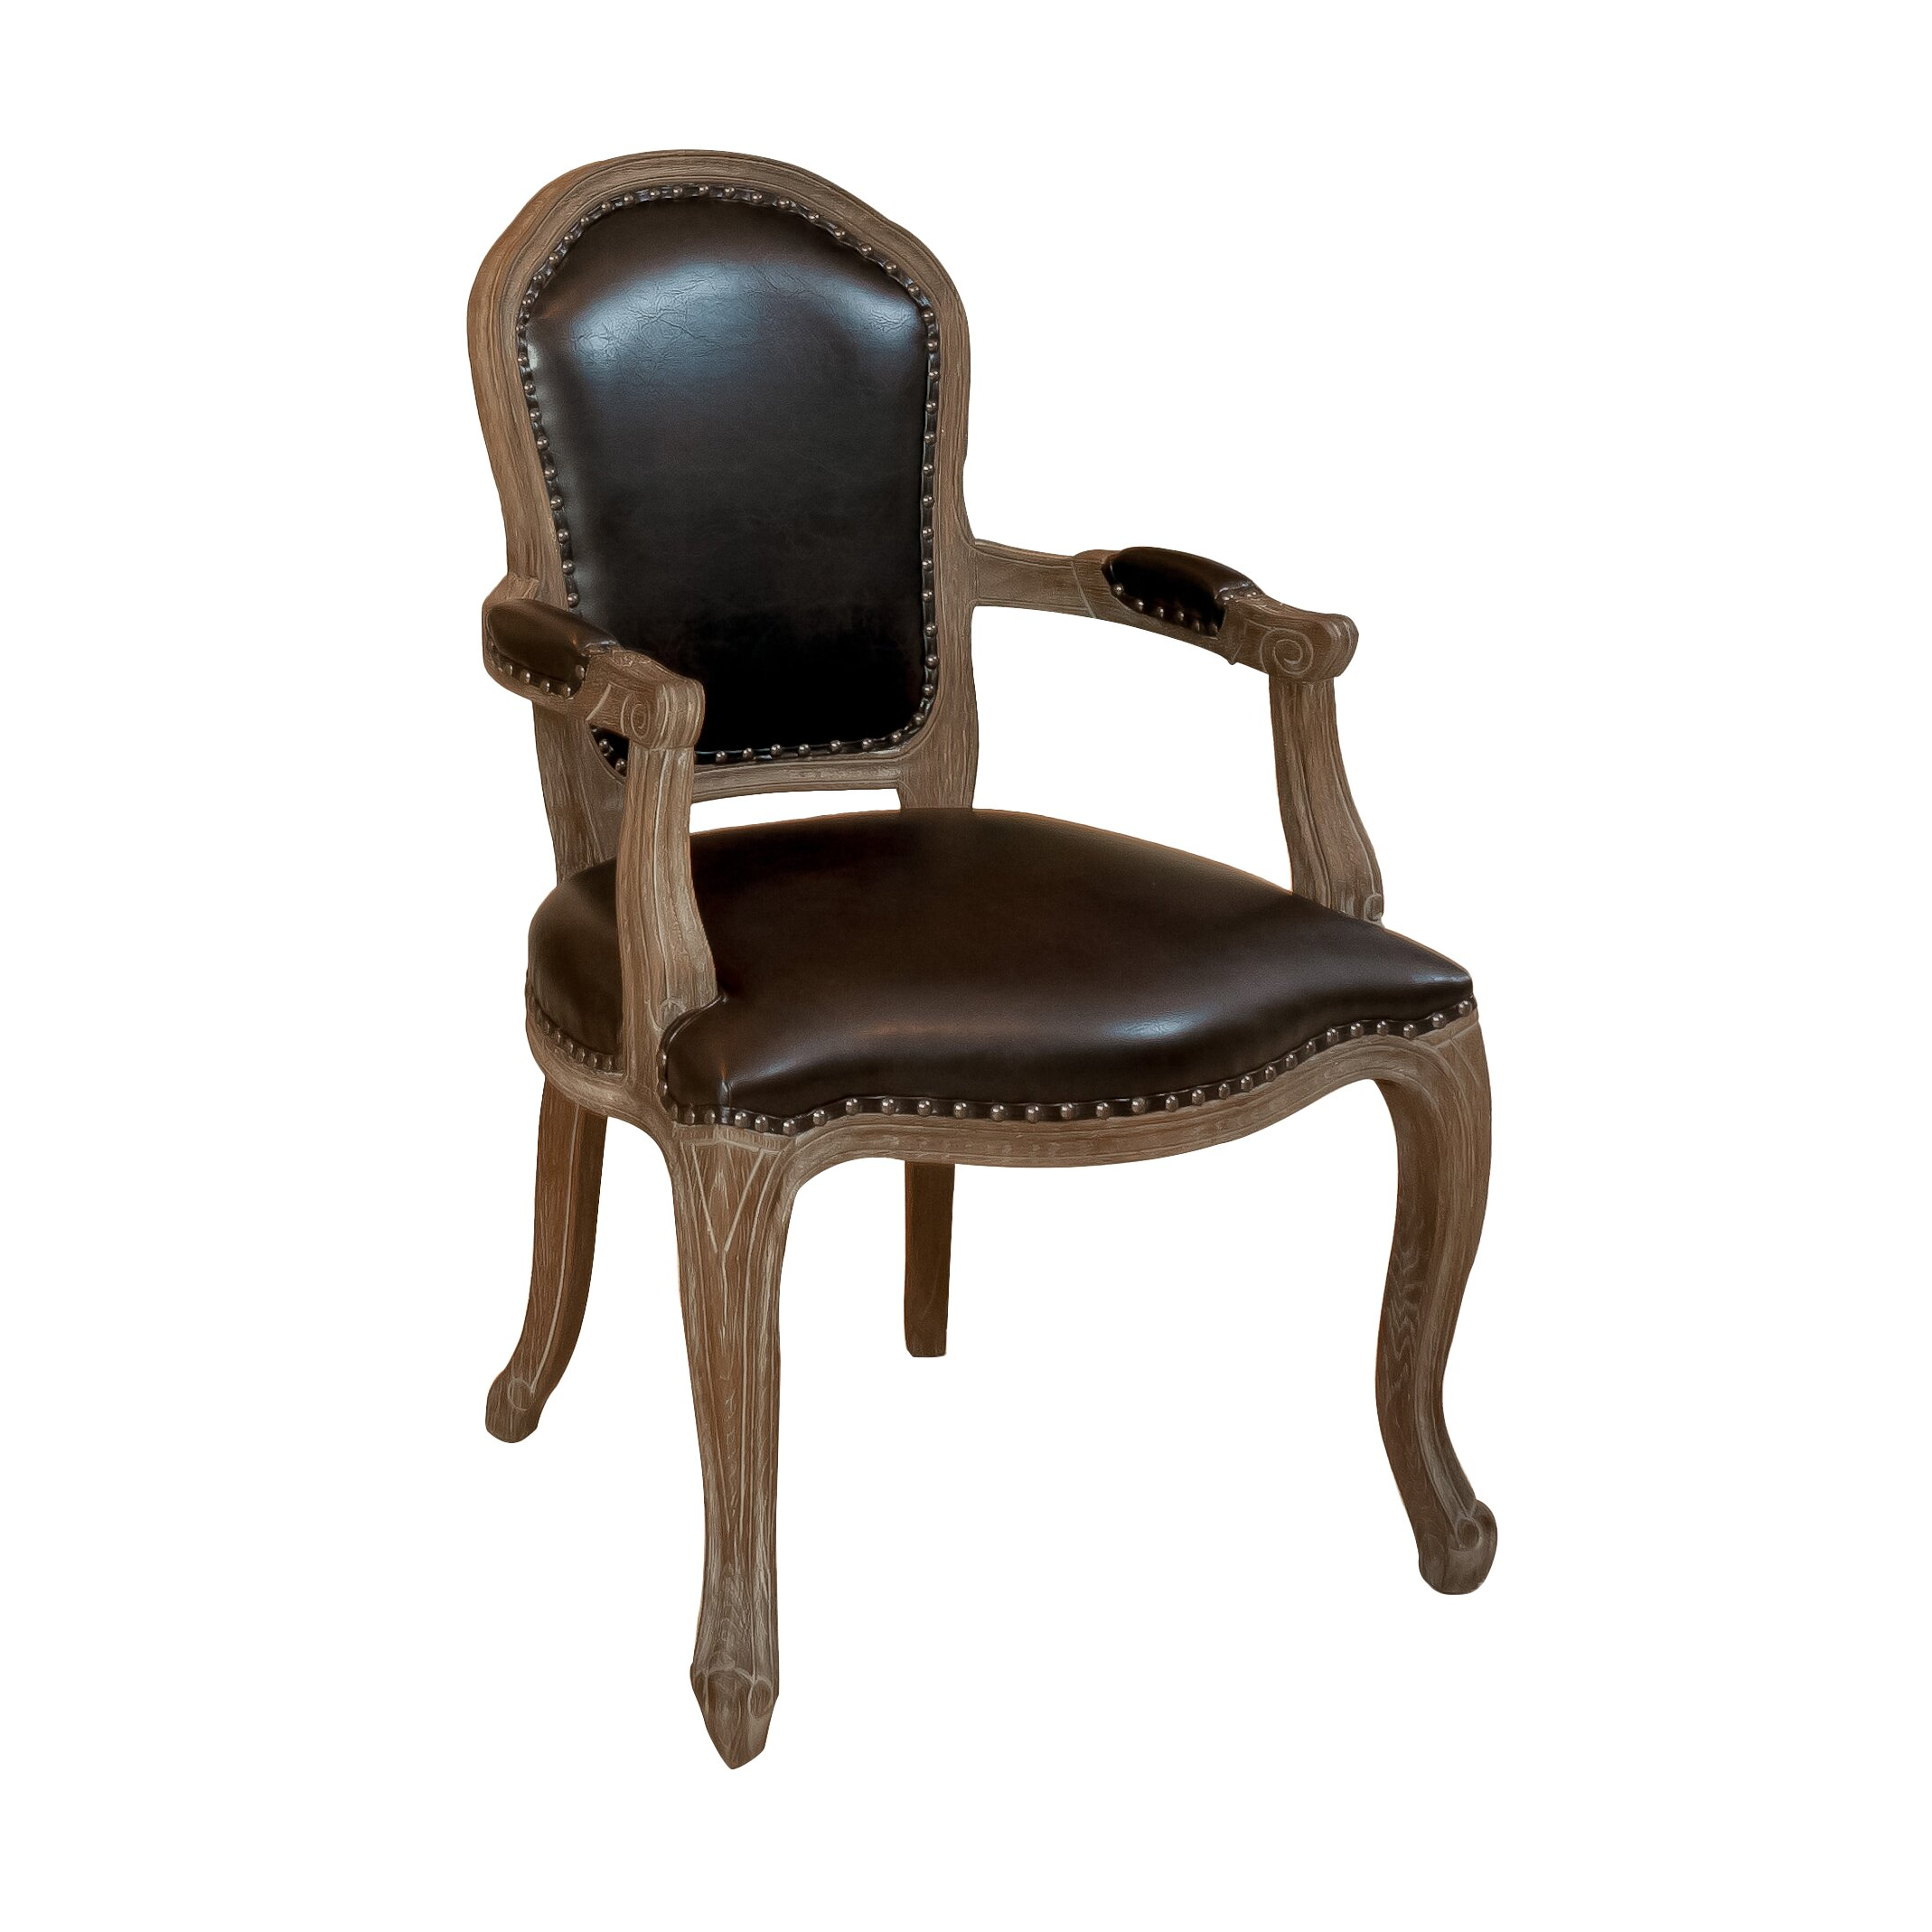 home loft concepts carolina leather weathered wood arm chair reviews wayfair. Black Bedroom Furniture Sets. Home Design Ideas